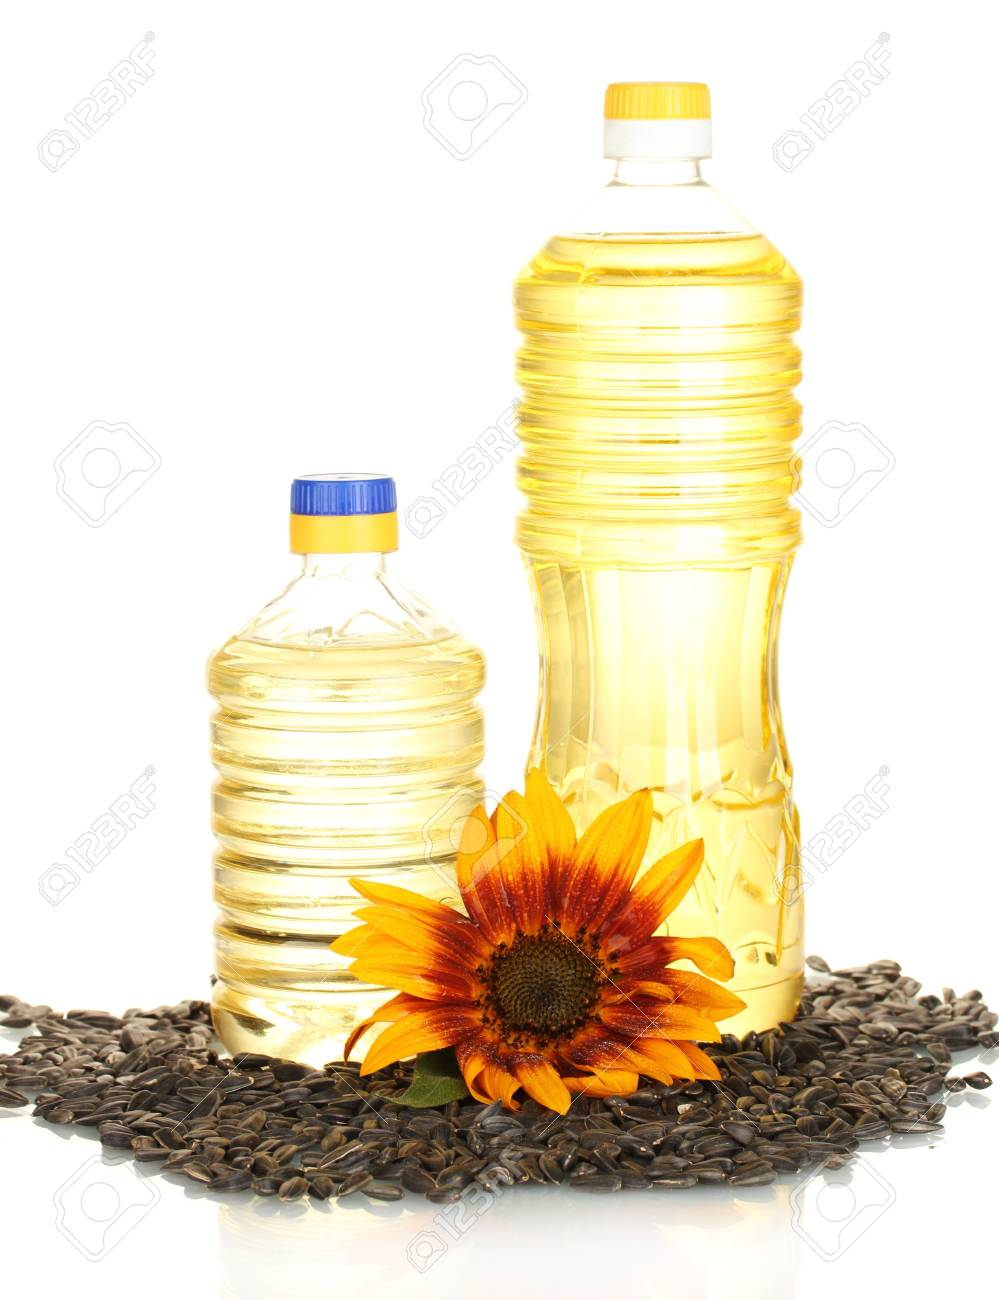 sunflower oil in a plastic bottles isolated on white background Stock Photo - 14170133